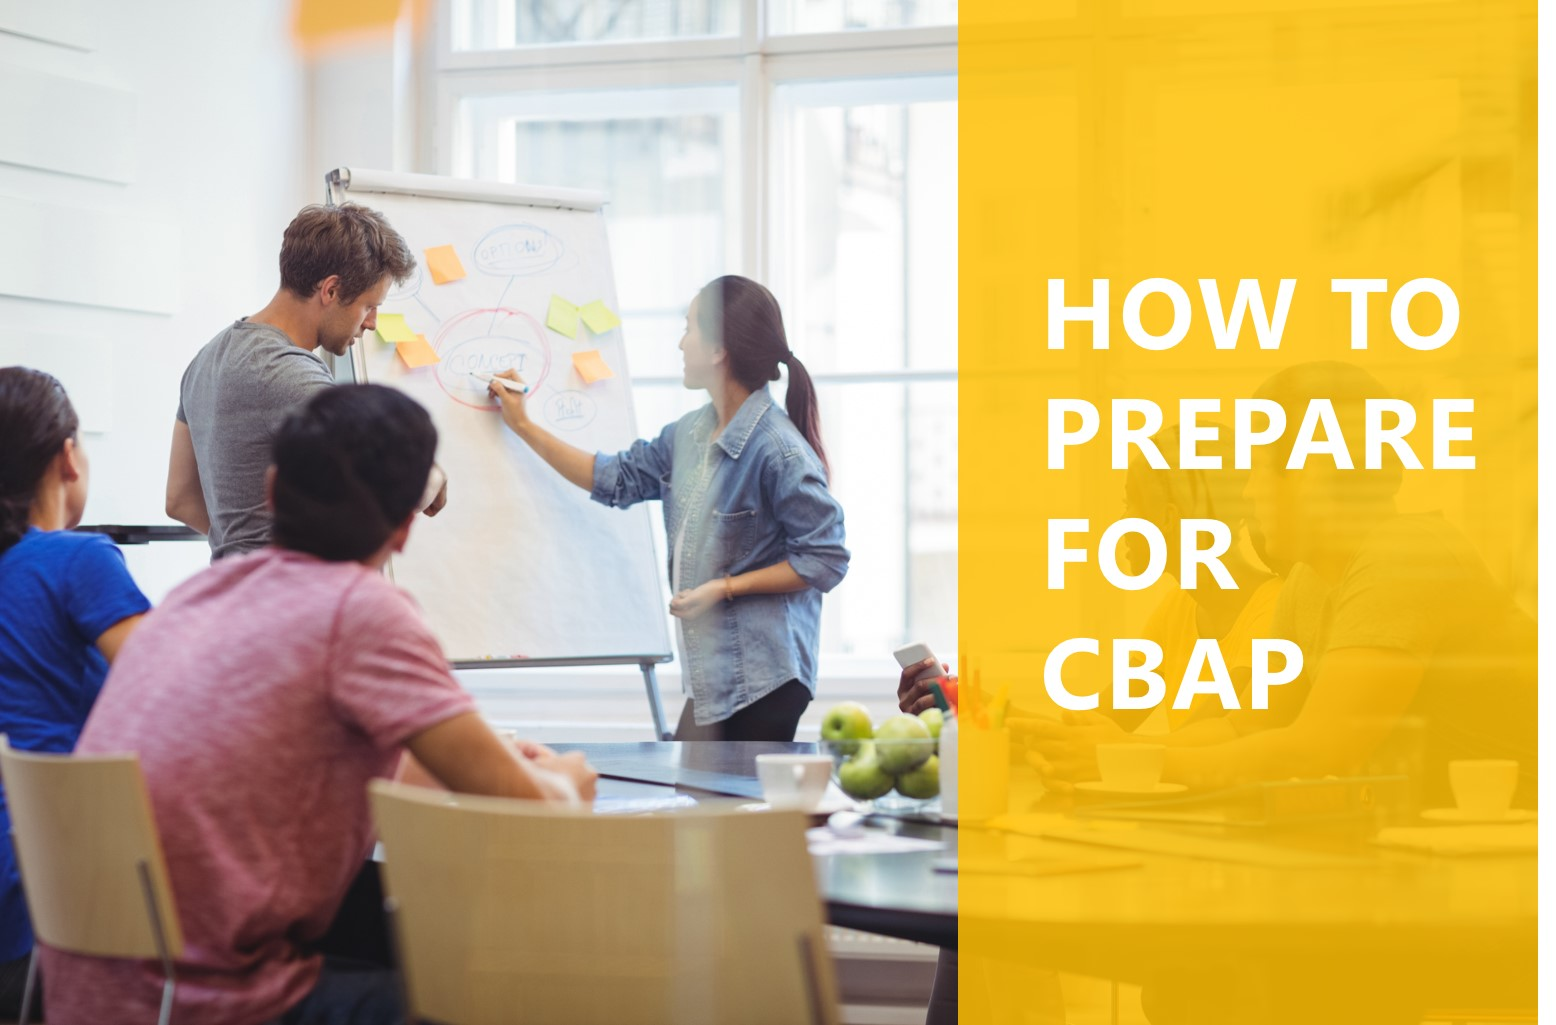 How to prepare for CBAP